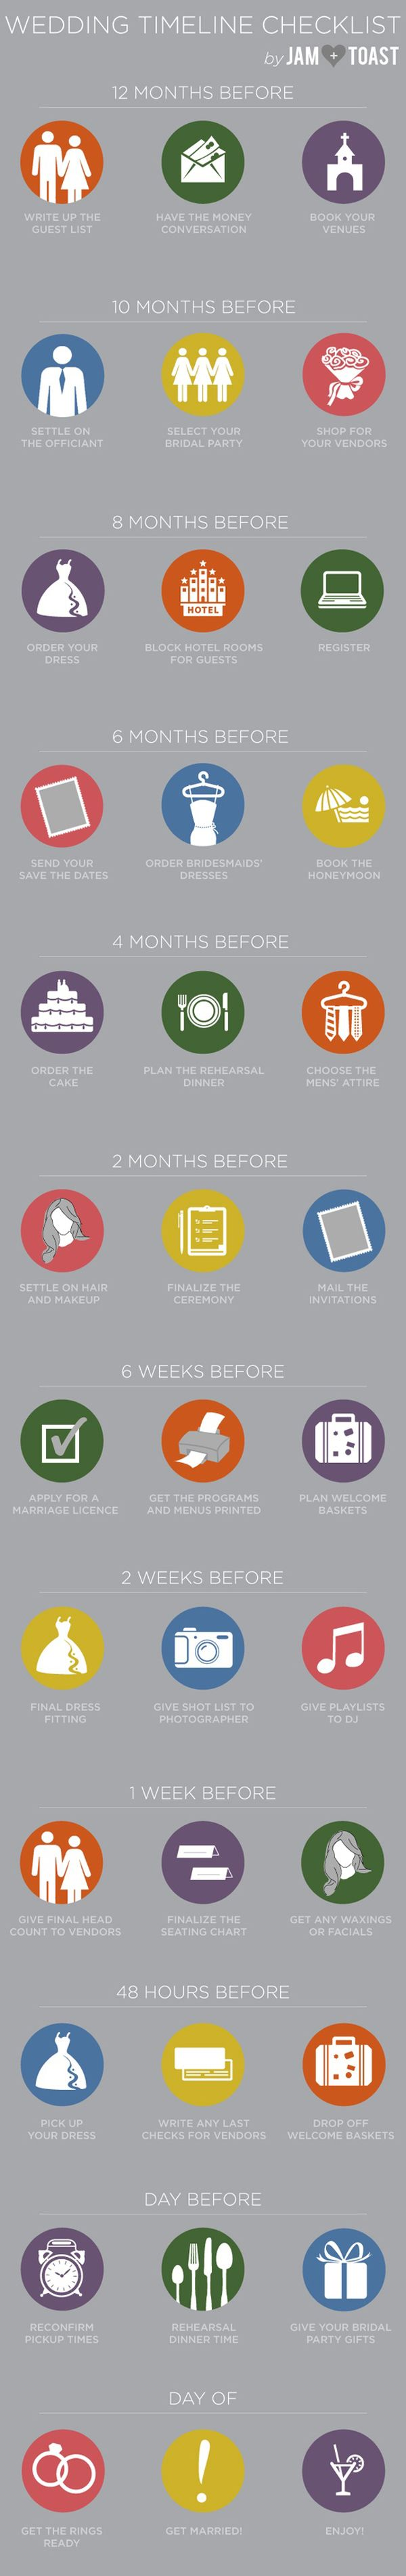 wedding planning timeline and checklist for new brides